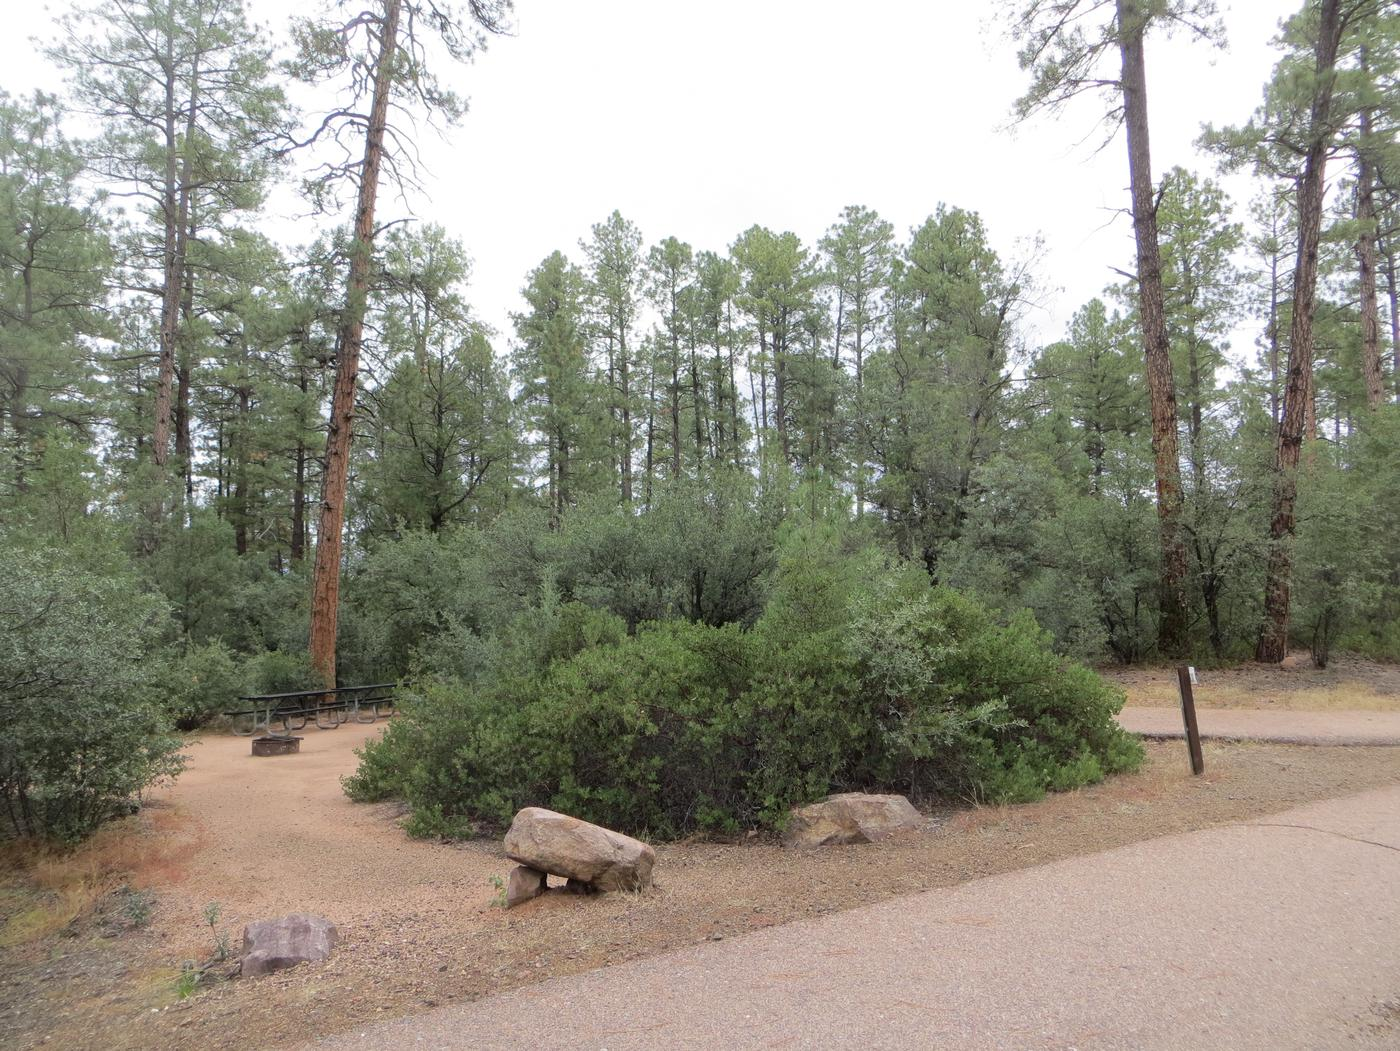 Houston Mesa, Black Bear Loop site #24 featuring parking, entrance to the wooded site, and picnic area.